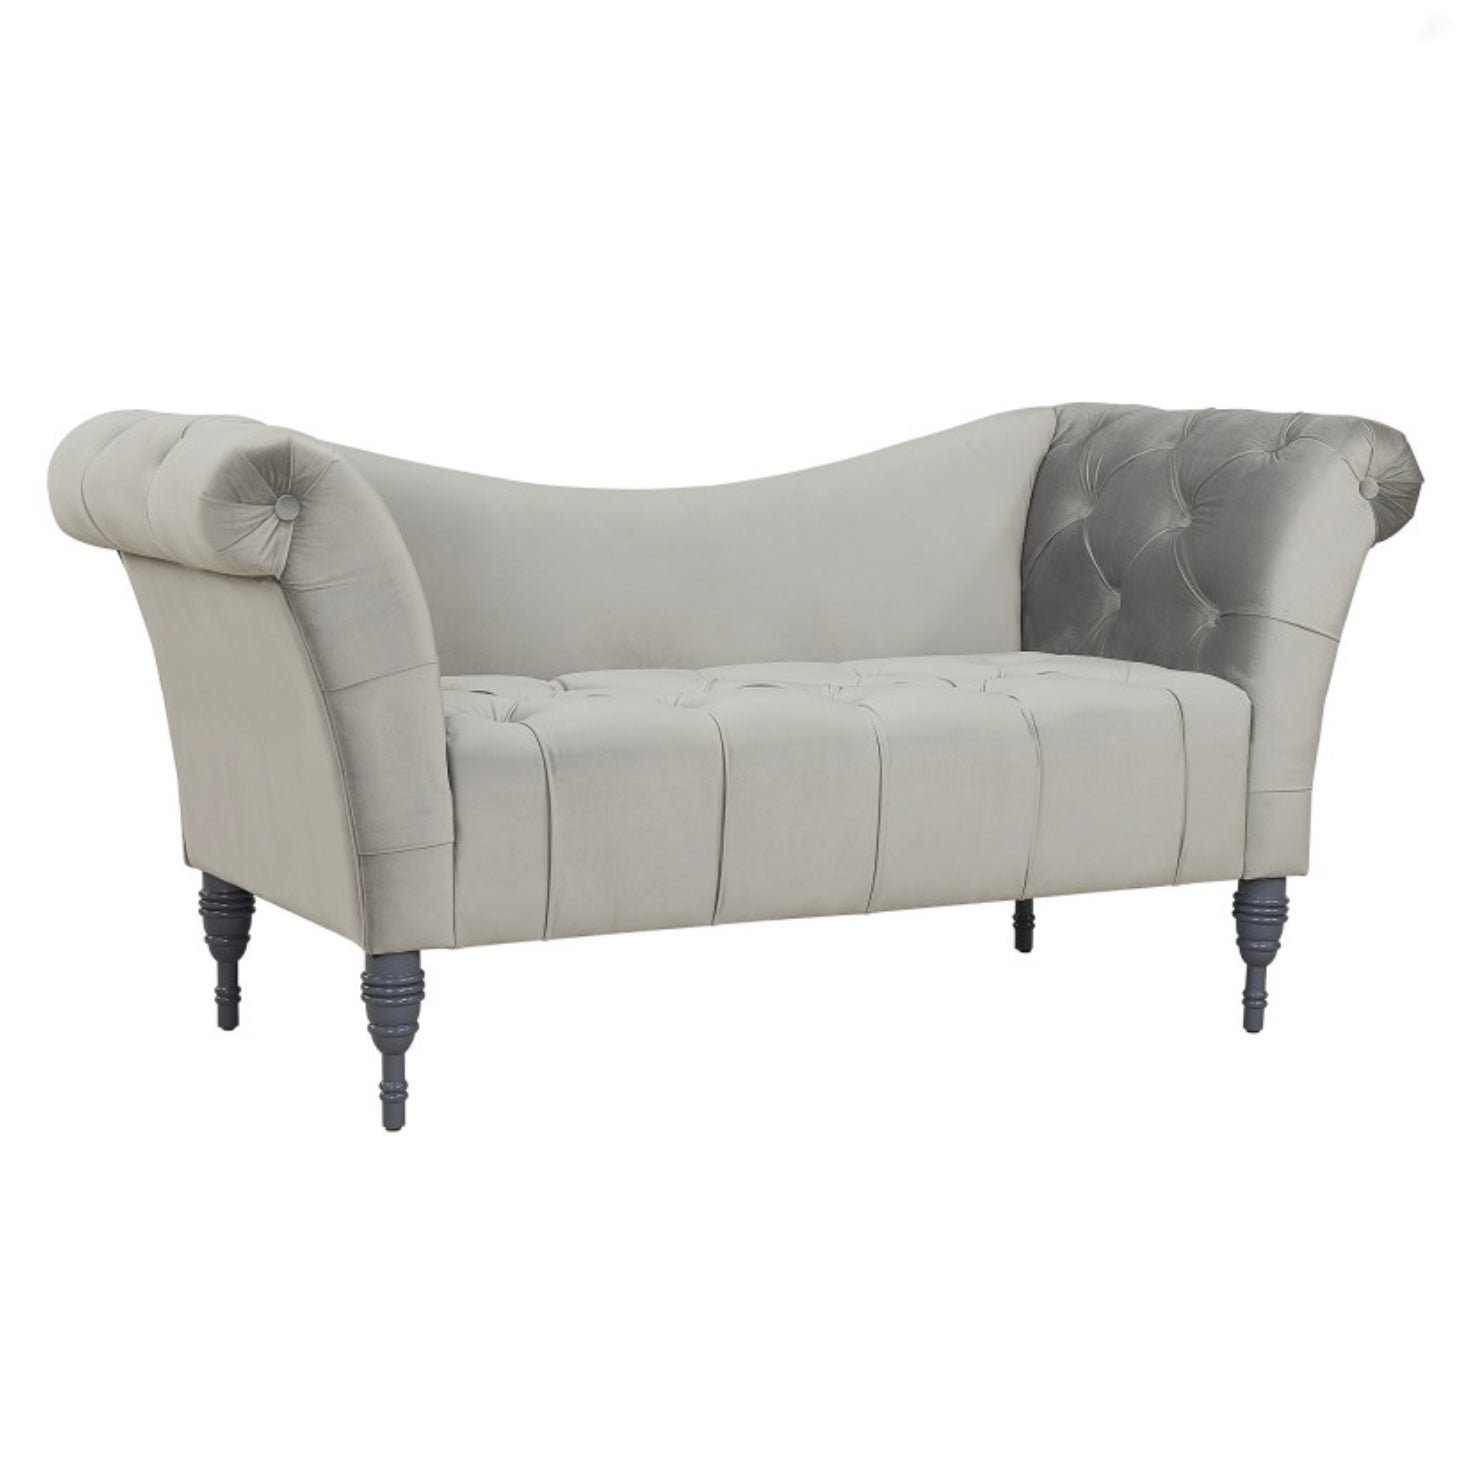 Grey Velvet Tufted Sette, WHF-Worldwide Home Furnishings Inc., Putti Fine Furnishings